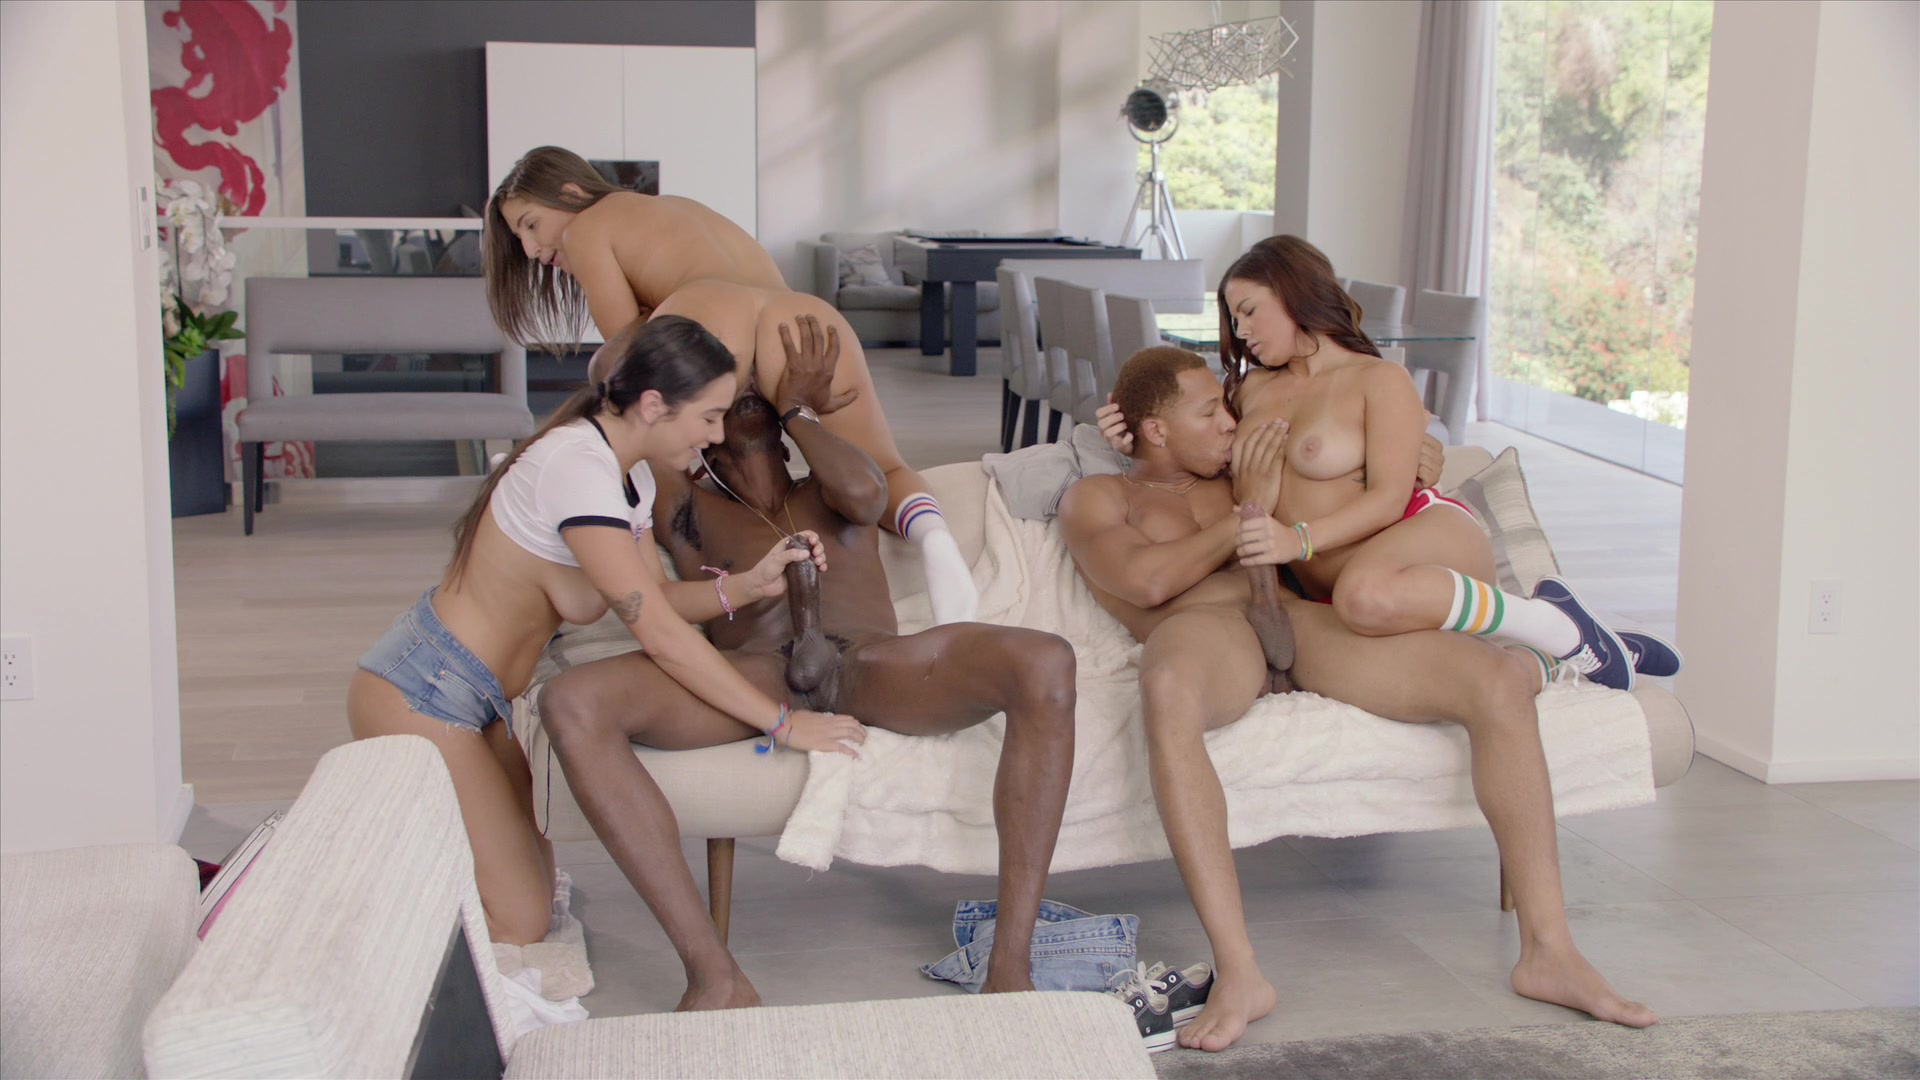 Scene with Keisha Grey, Abella Danger and Karlee Grey - image 8 out of 20